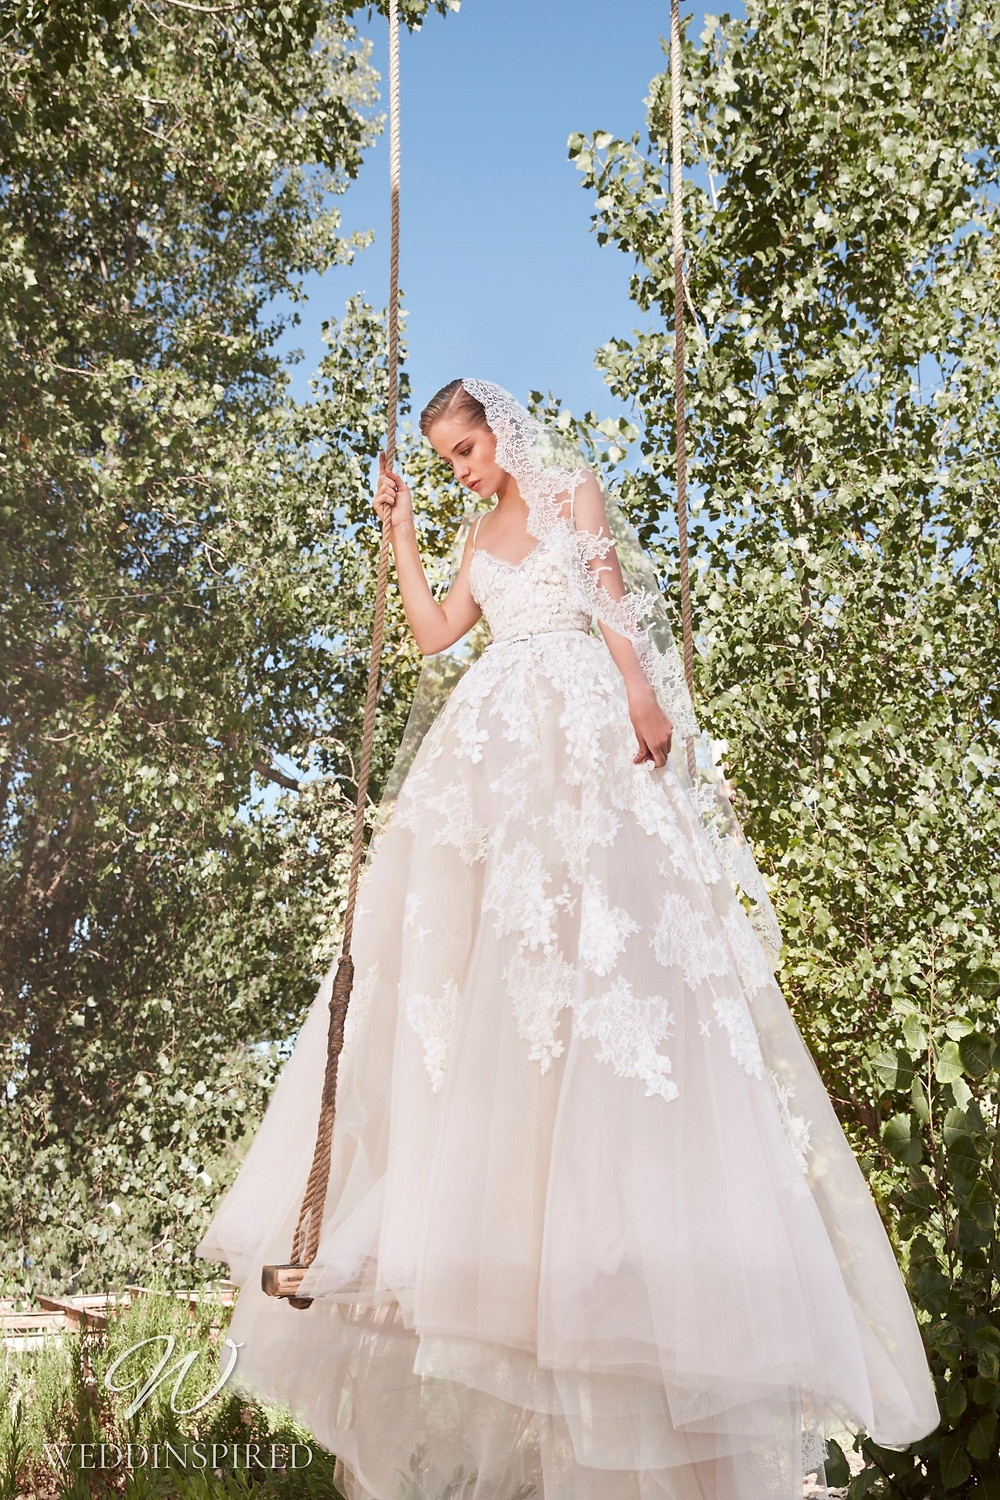 An Elie Saab Spring 2021 blush lace romantic ball gown wedding dress with straps and a v neck